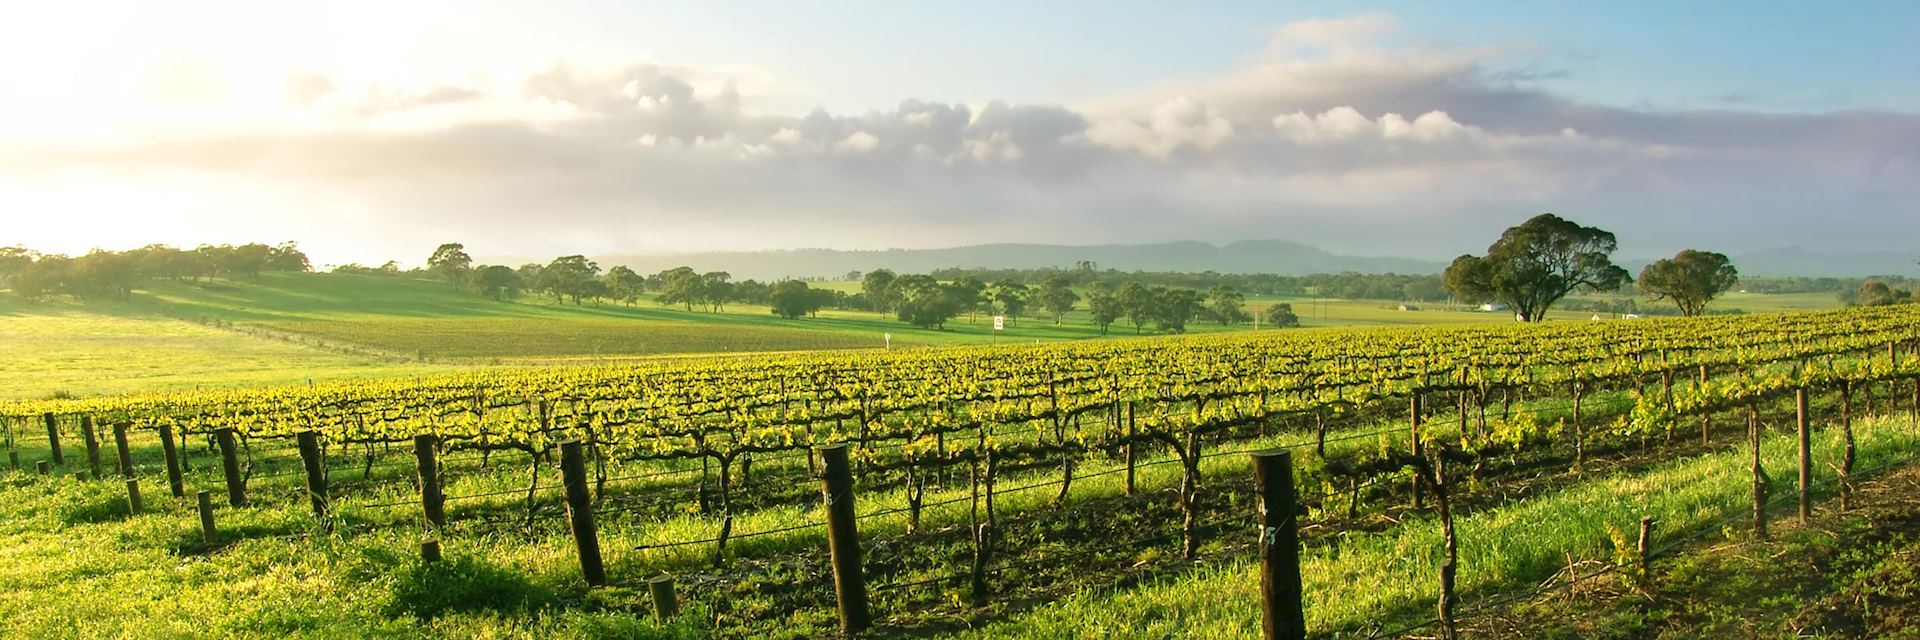 Vineyard in the Barossa Valley